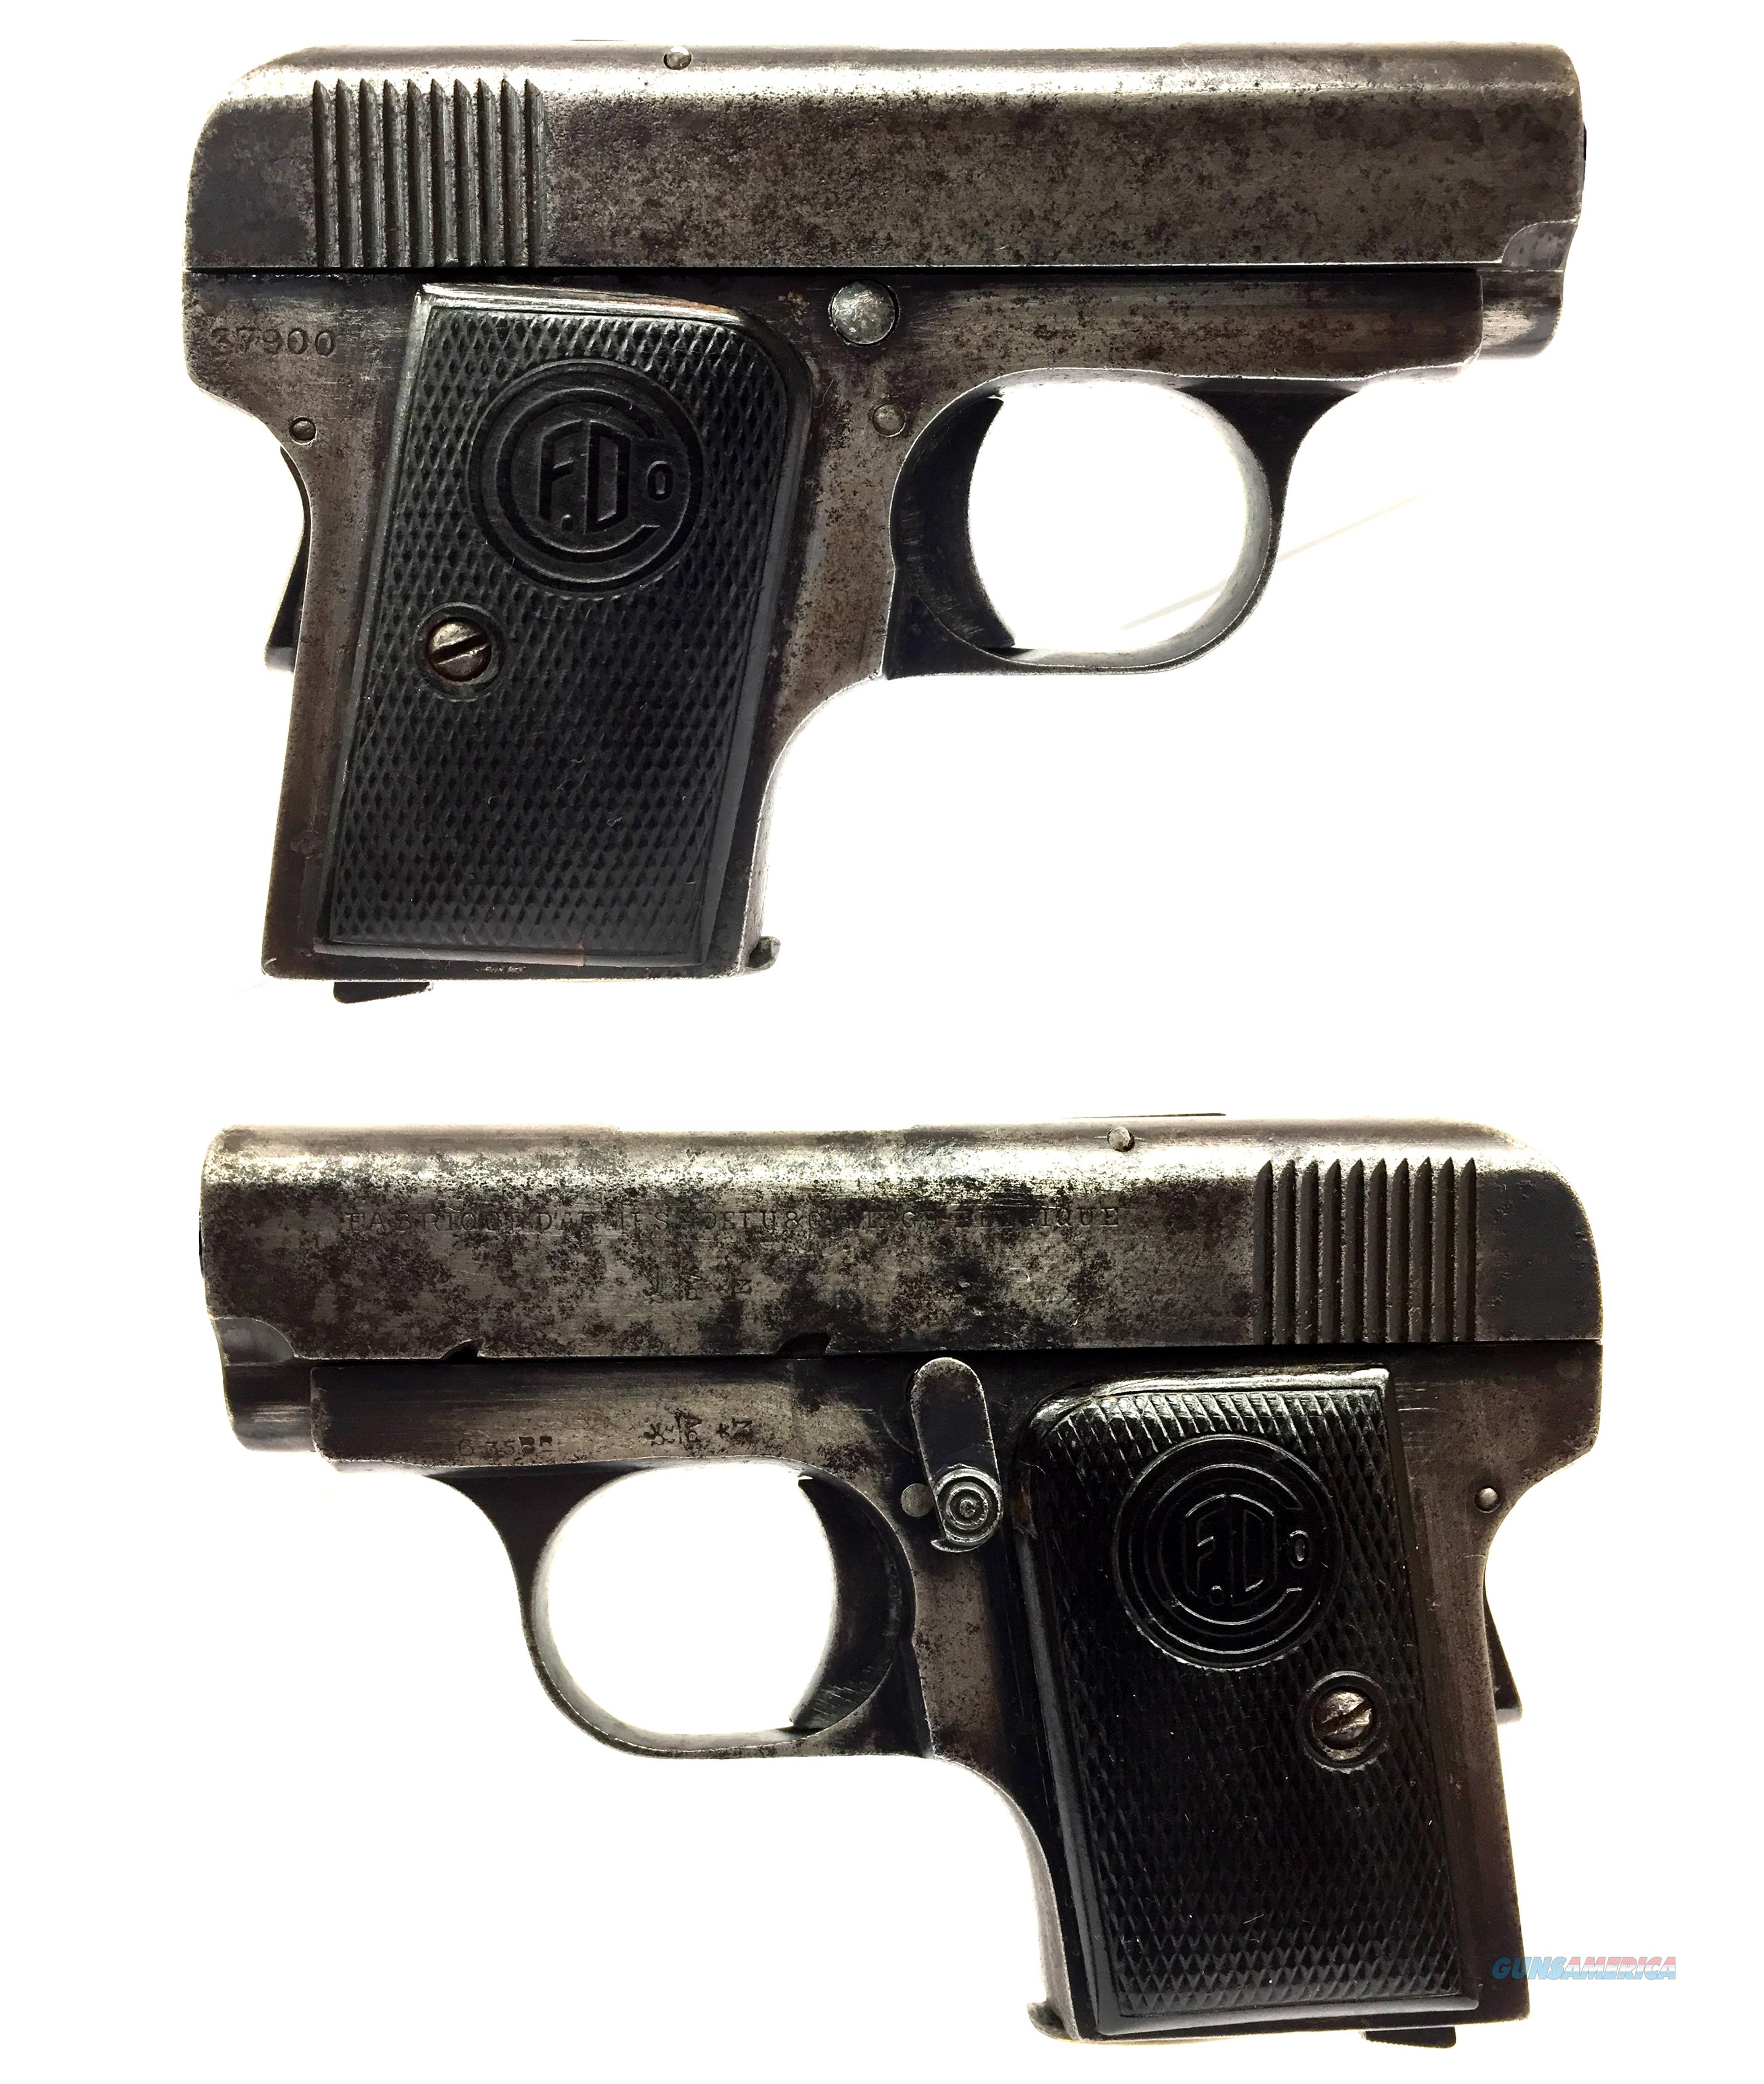 F.D. Co. .25ACP Semi-Automatic Pocket Pistol  Guns > Pistols > F Misc Pistols